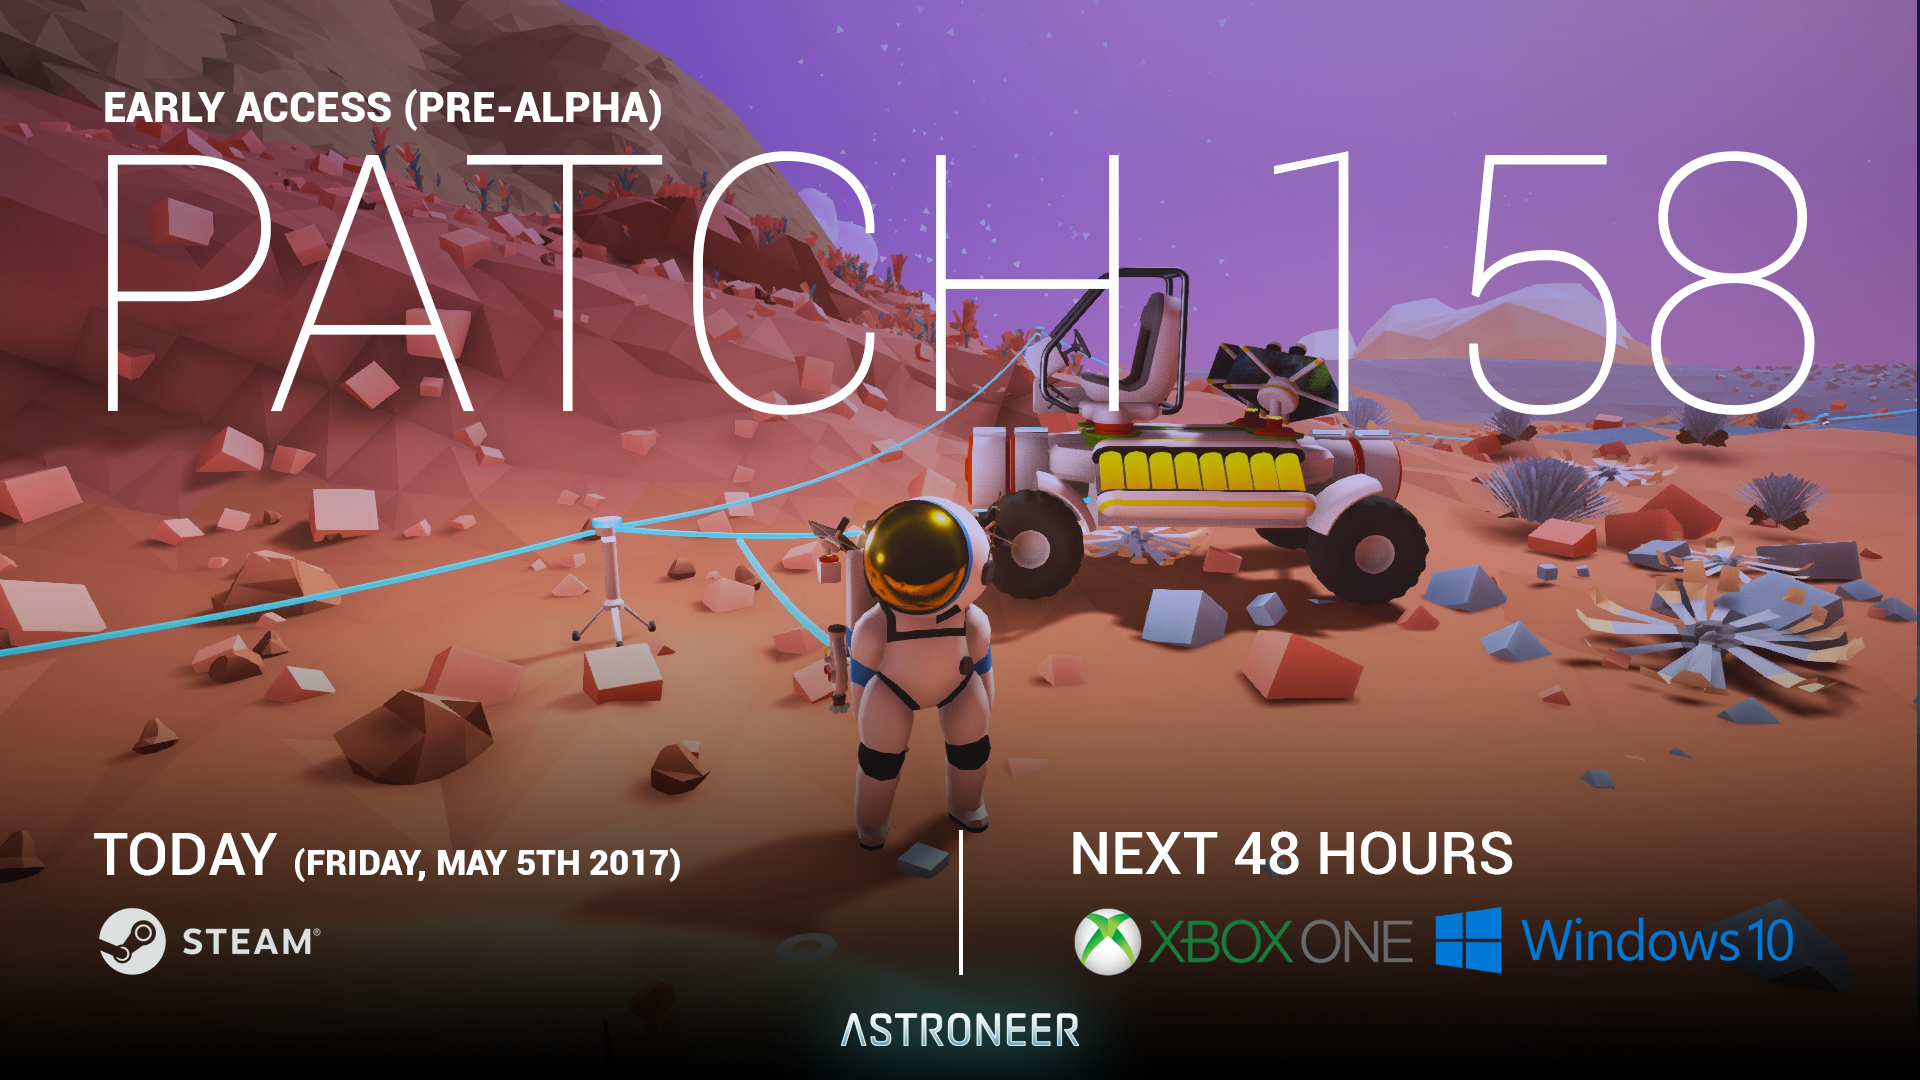 ASTRONEER :: 'Patch 158' is out